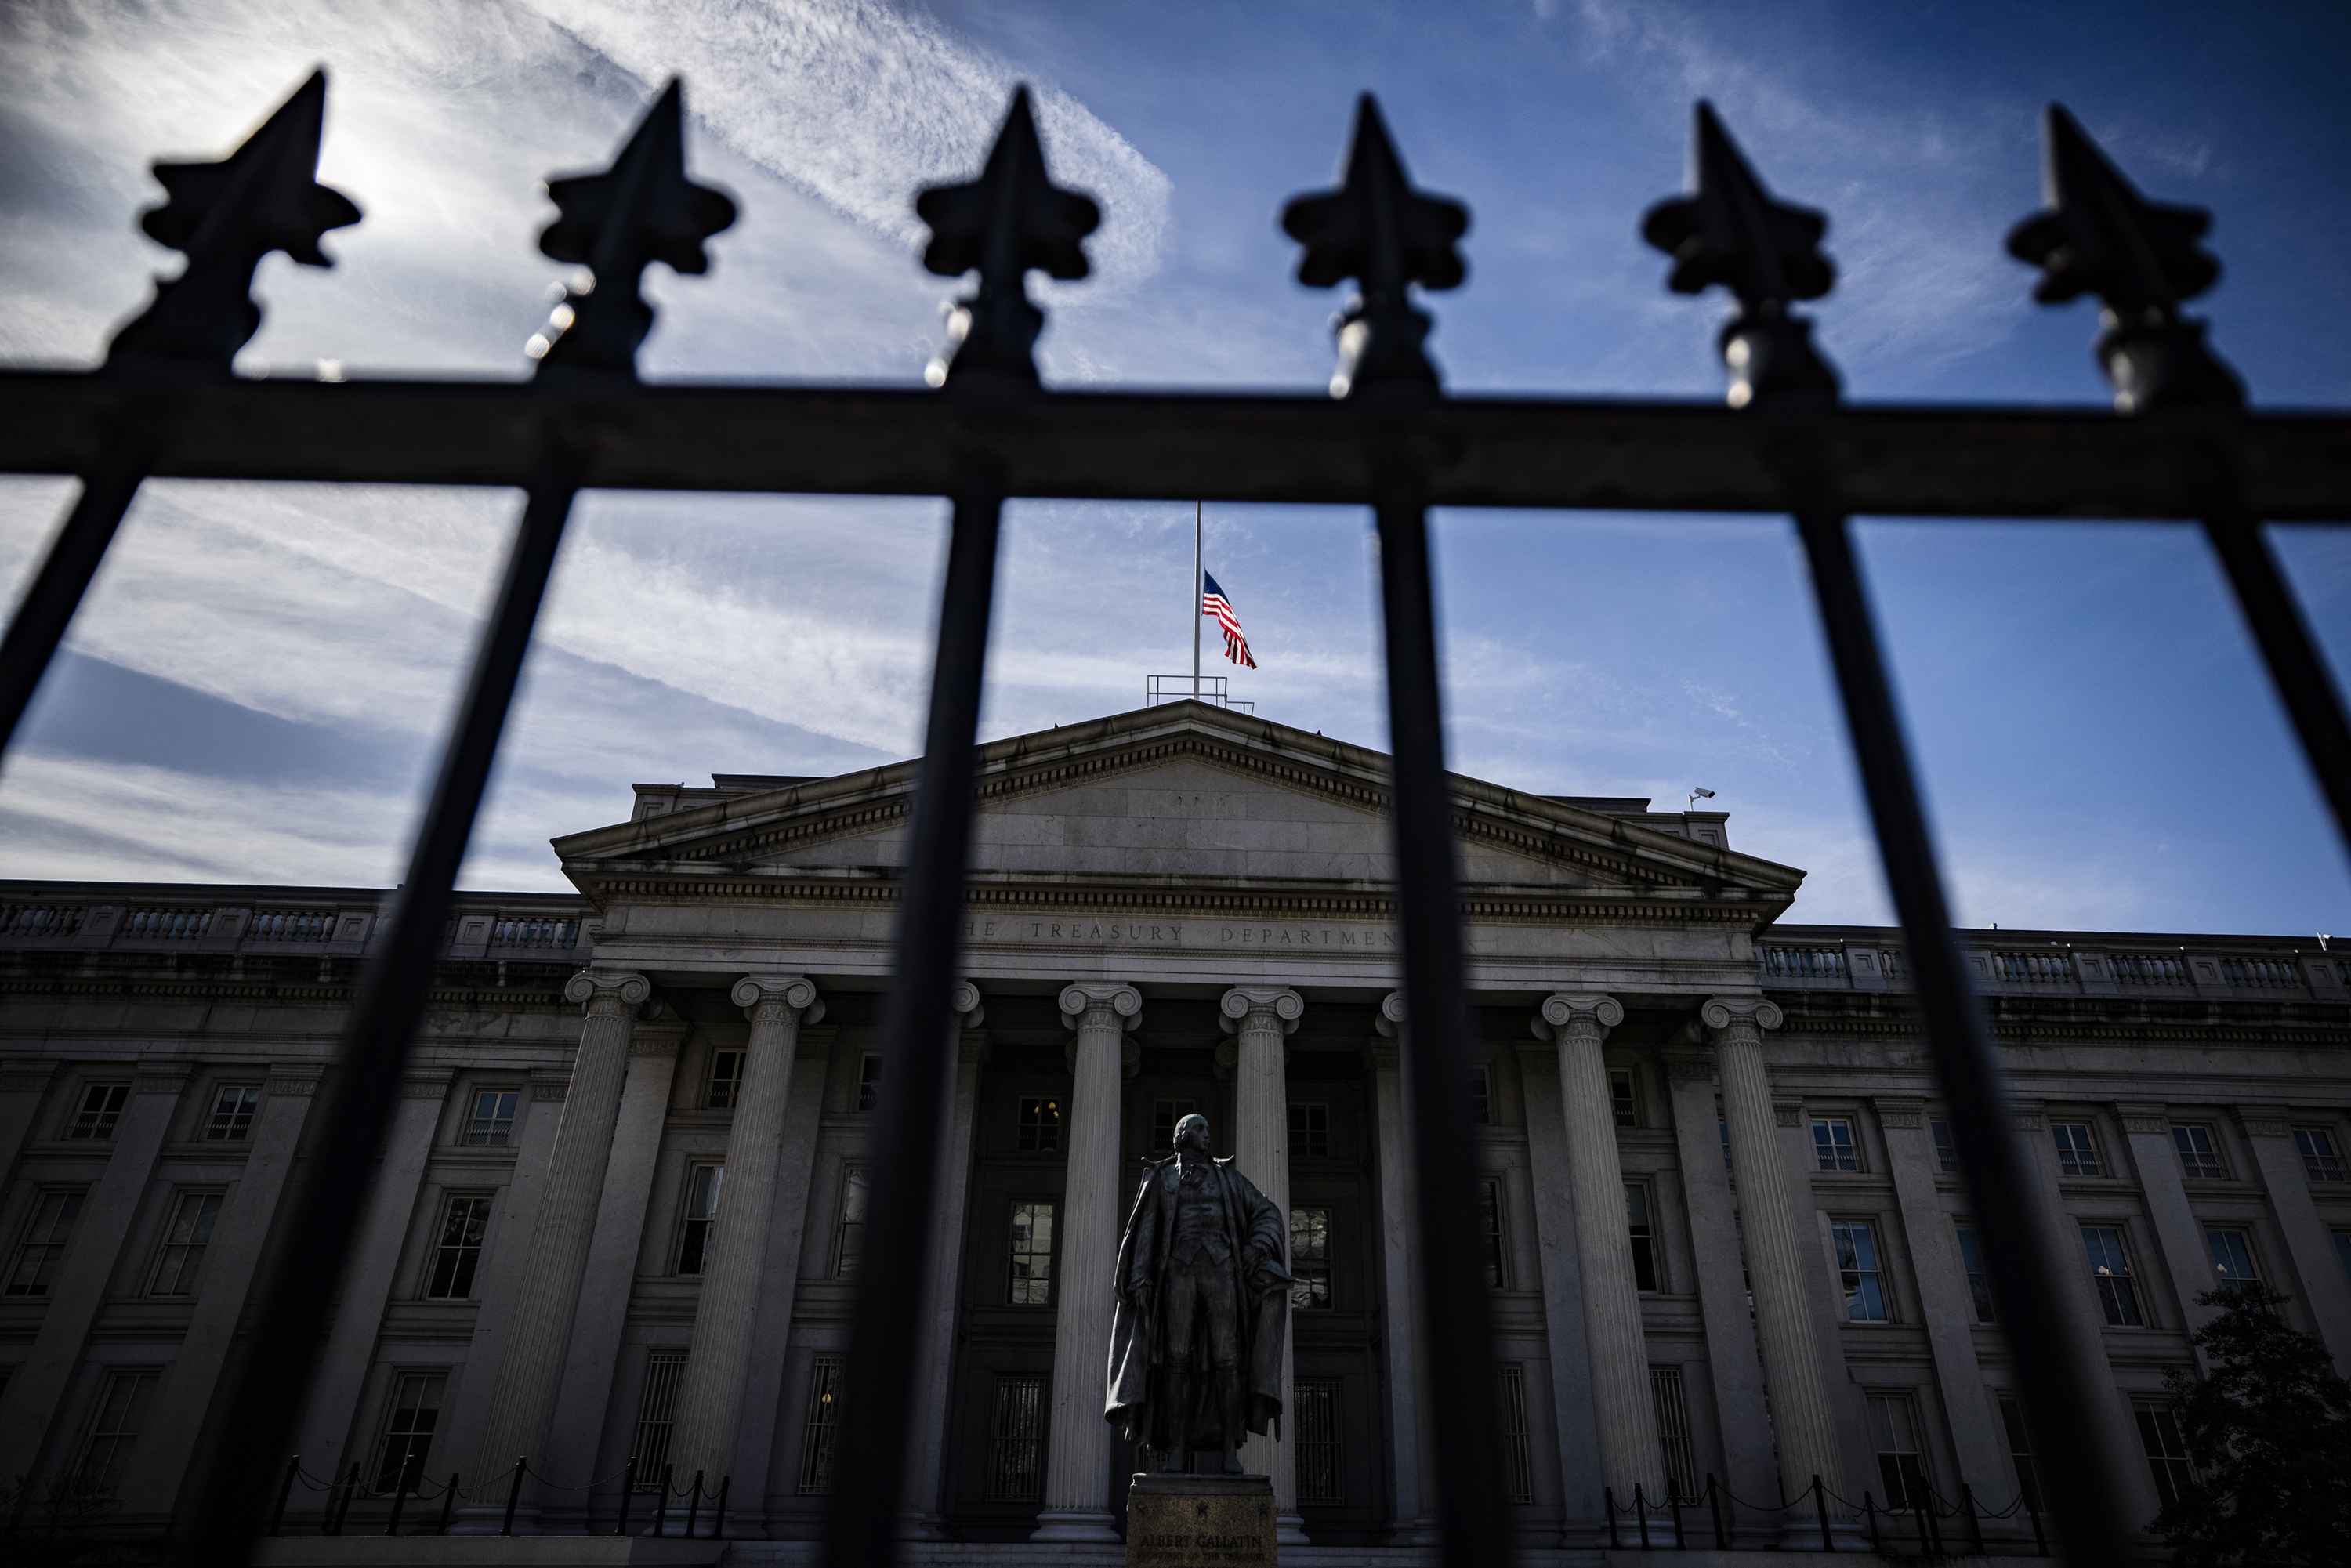 The US Treasury building in Washington, DC, seen from outside its fence.